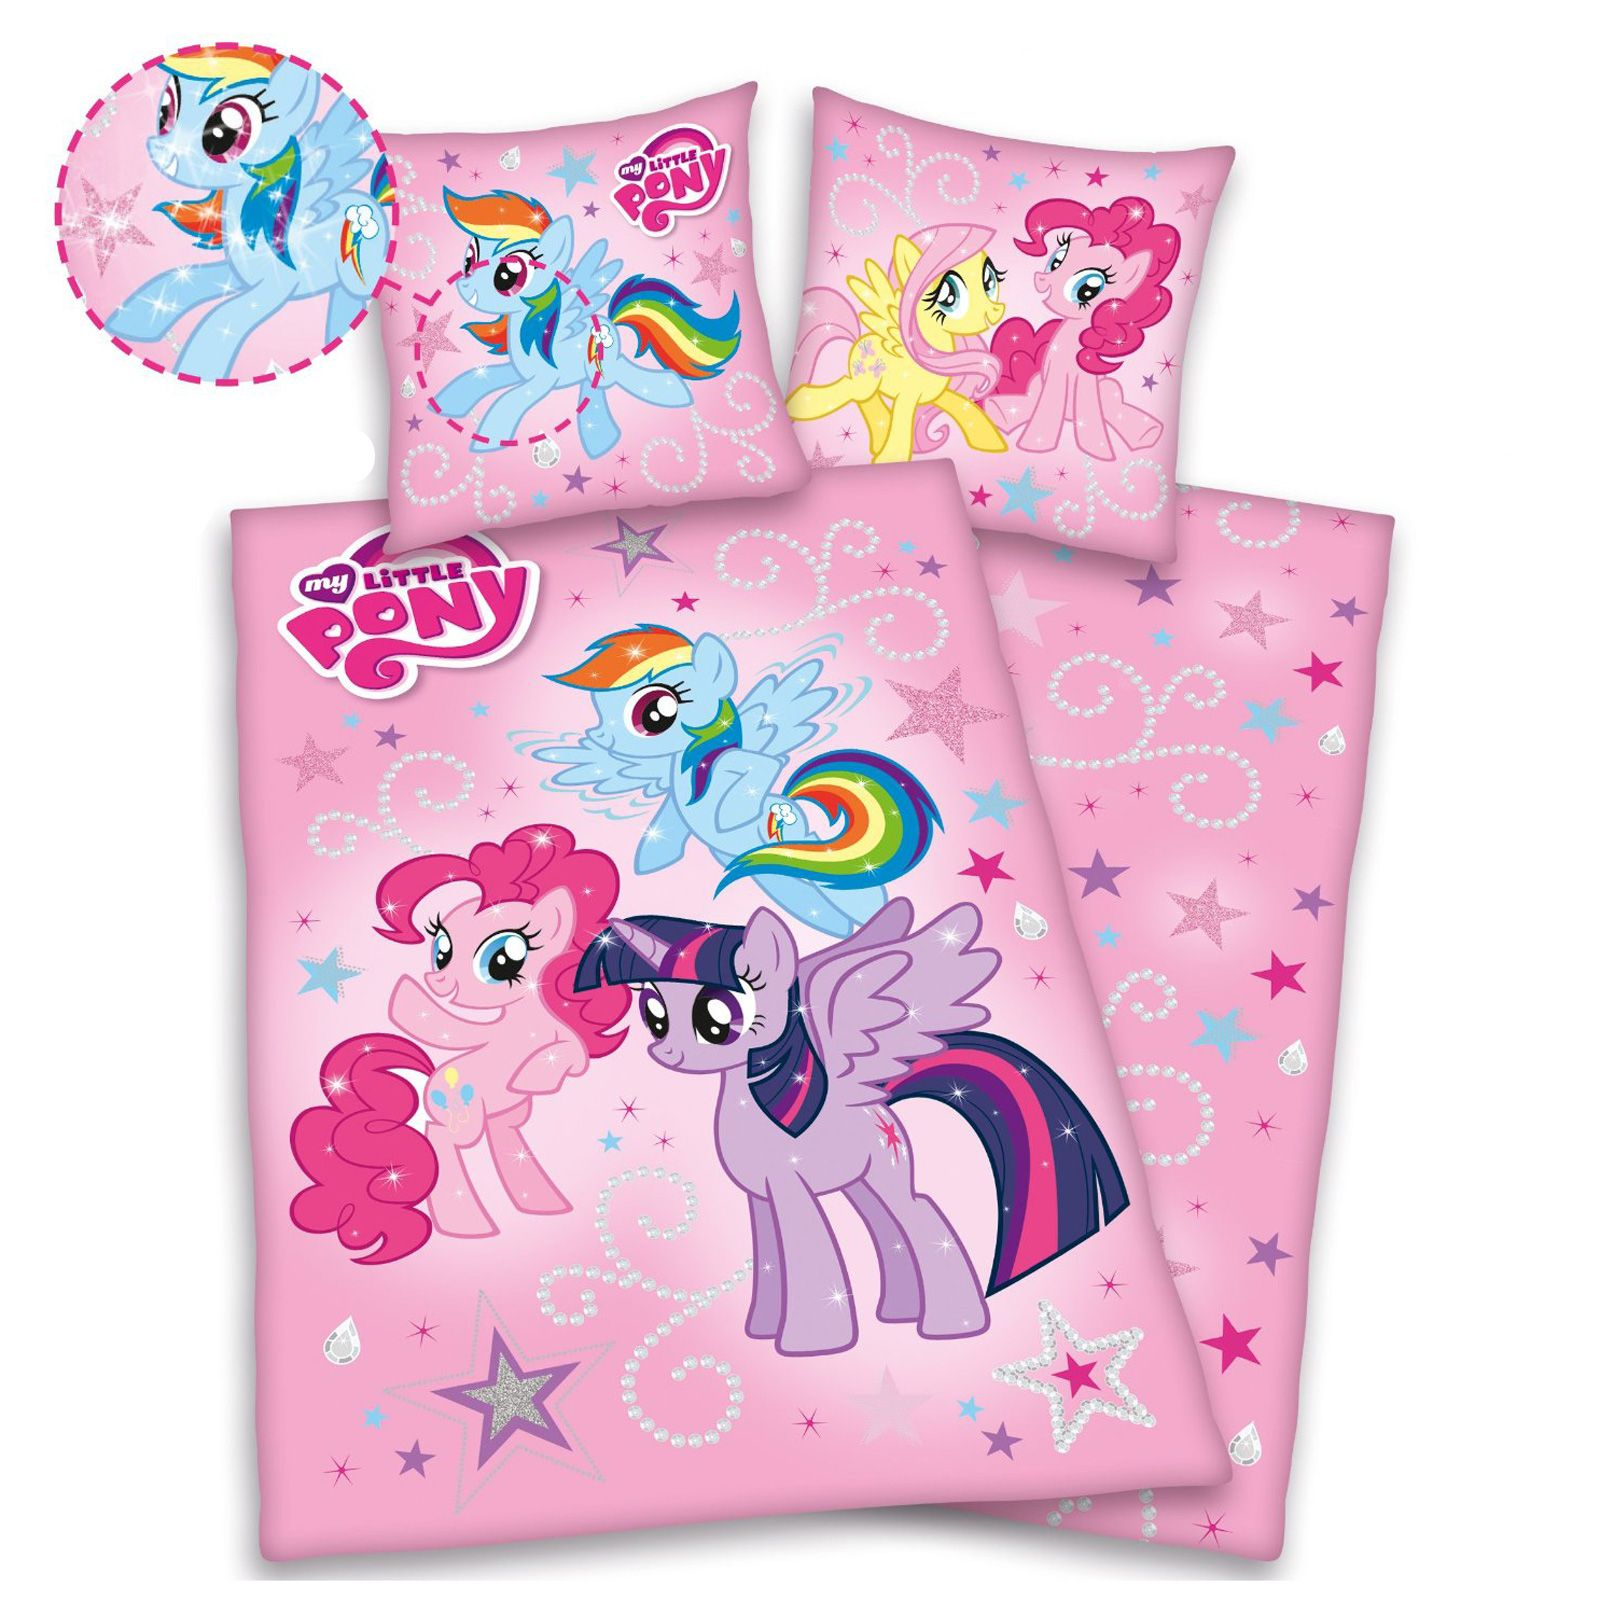 my little pony table and chairs scandinavian design kneeling chair duvet cover with glitter effect print 100